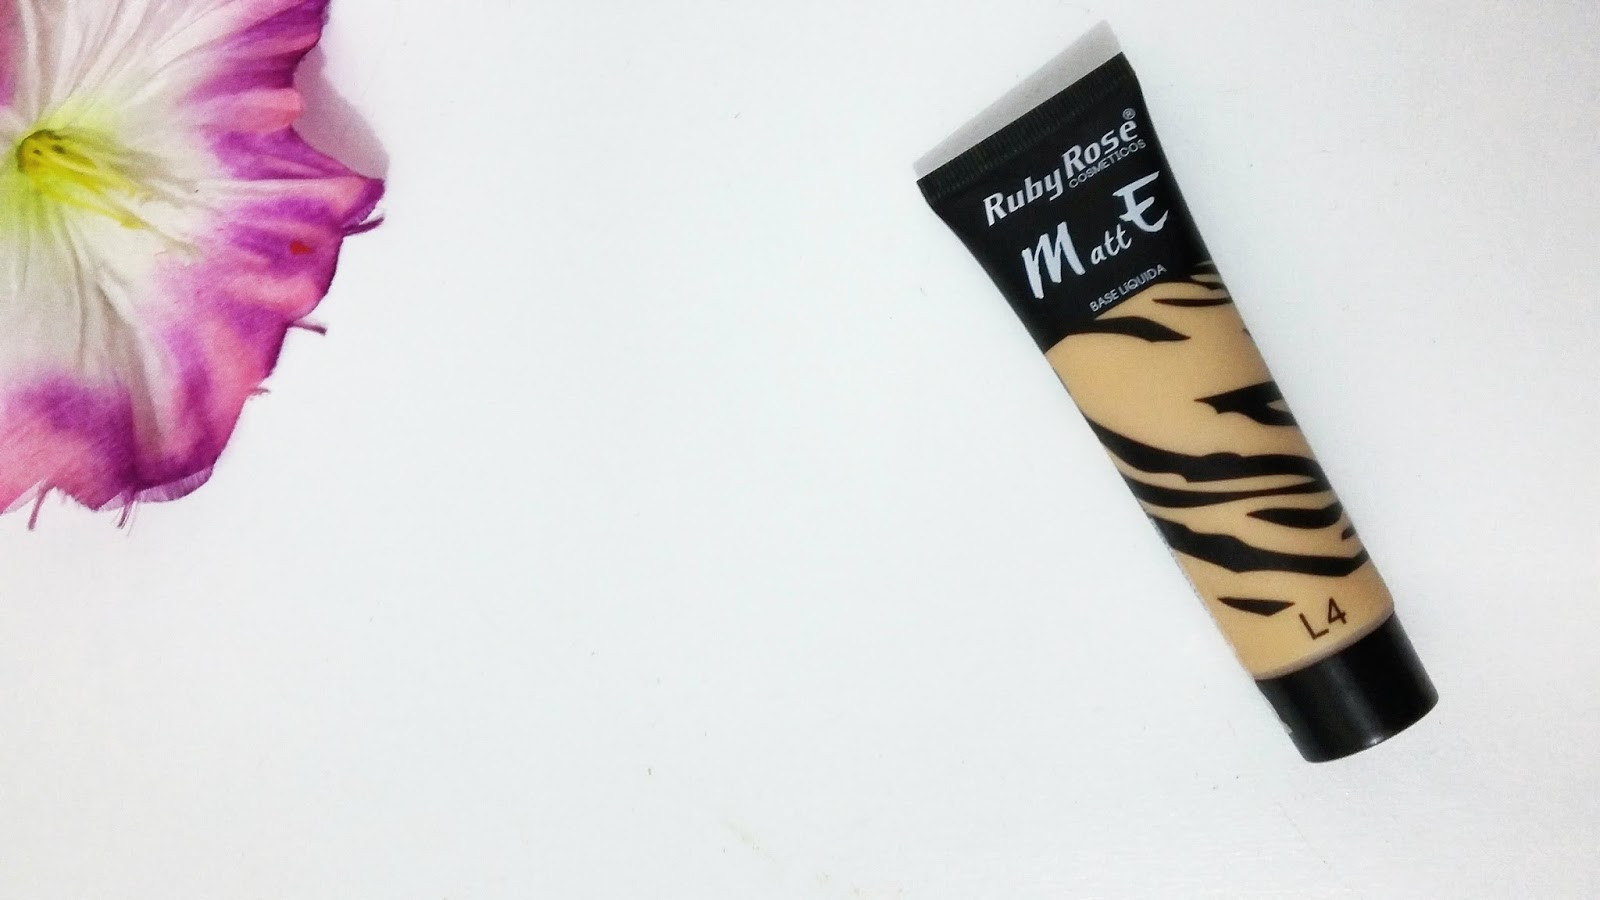 Resenha: Base Líquida Matte Ruby Rose